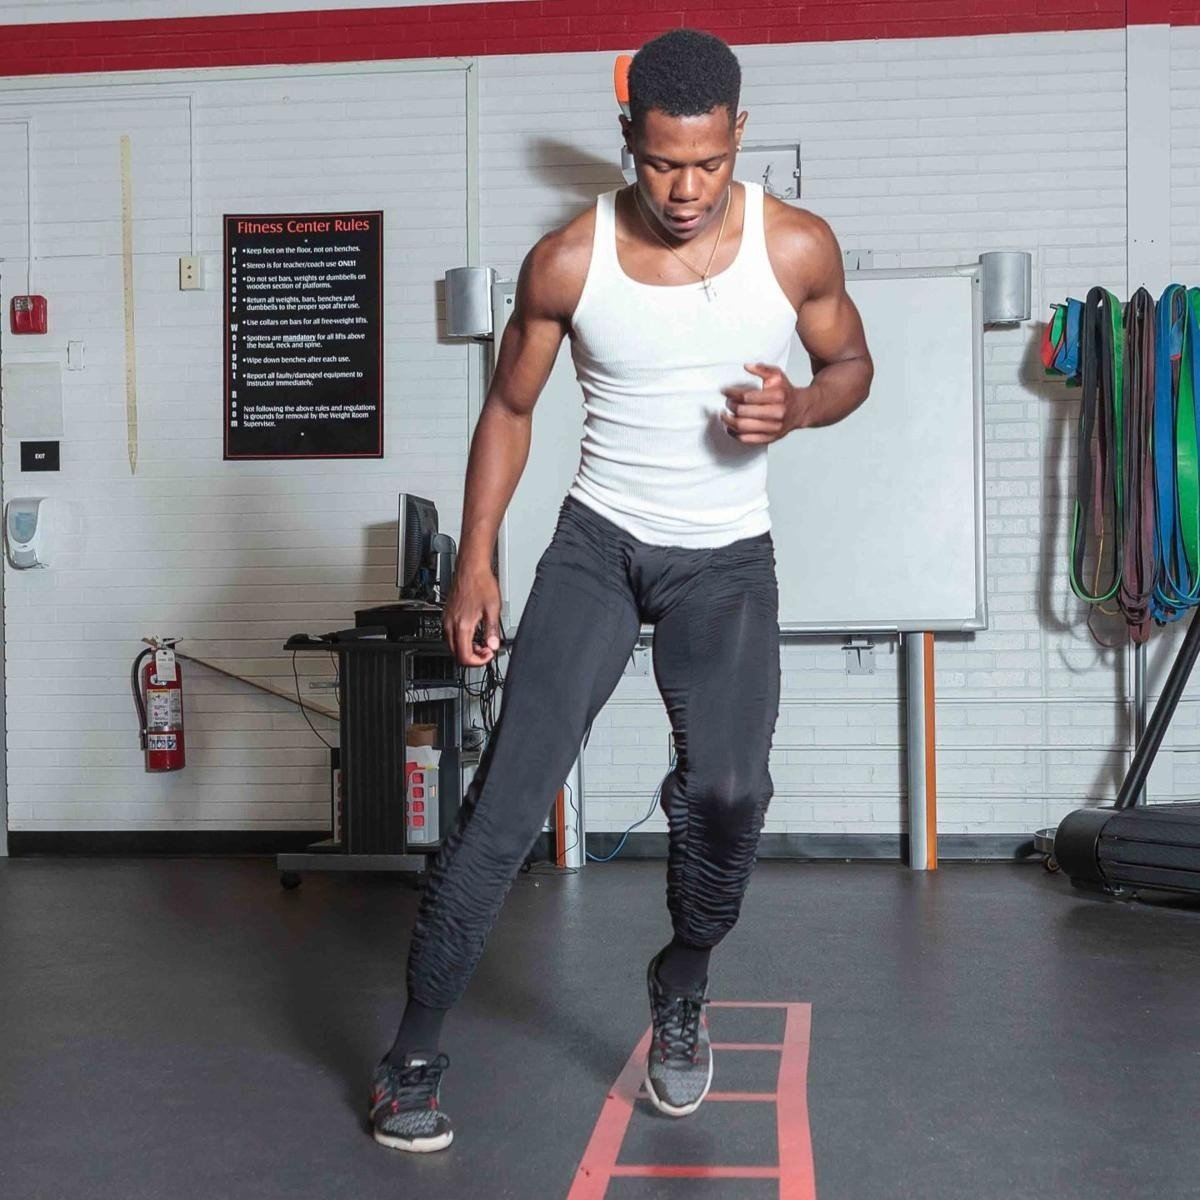 Made in St. Louis: Pants that help athletes train harder